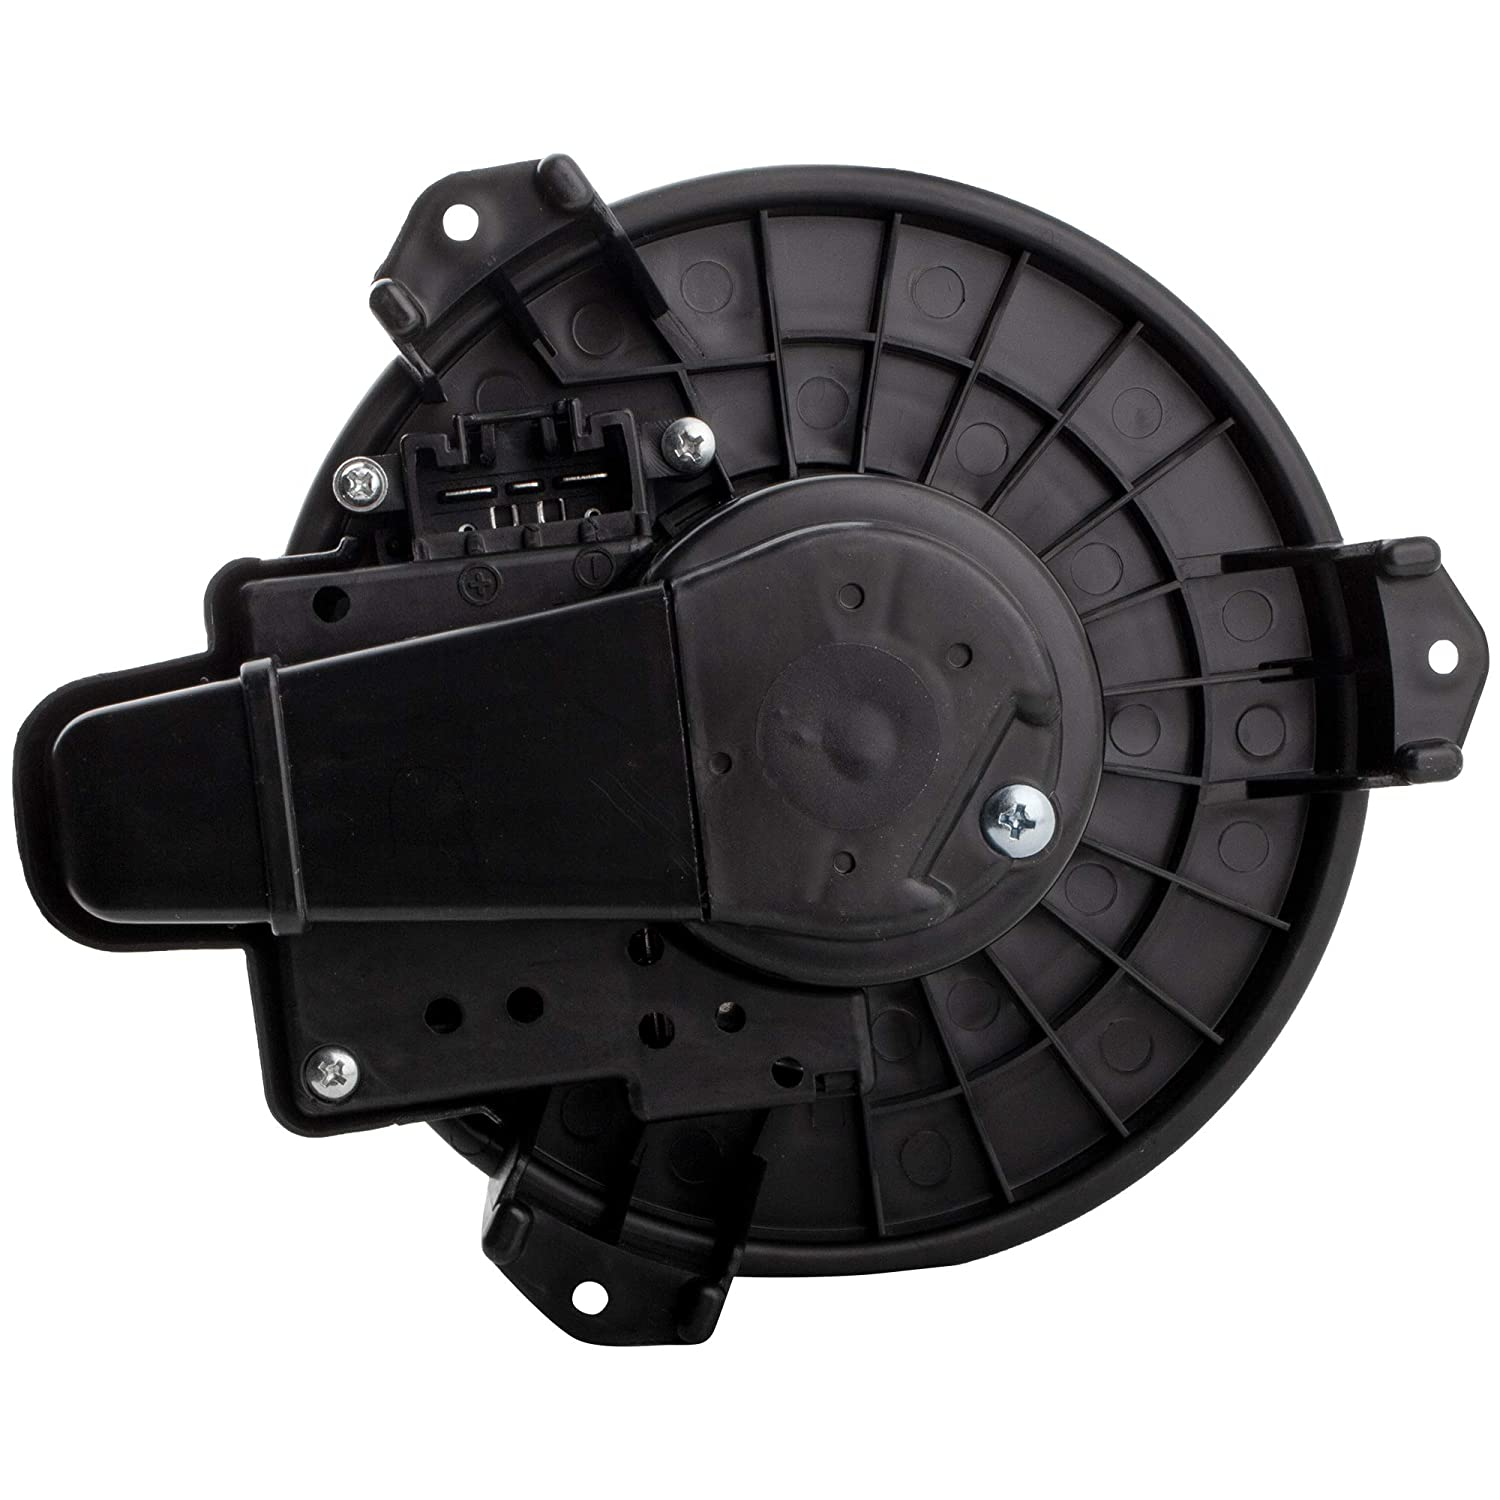 Toyota Prius 2010-2016 BOXI Heater Blower Motor with Fan Cage for ...